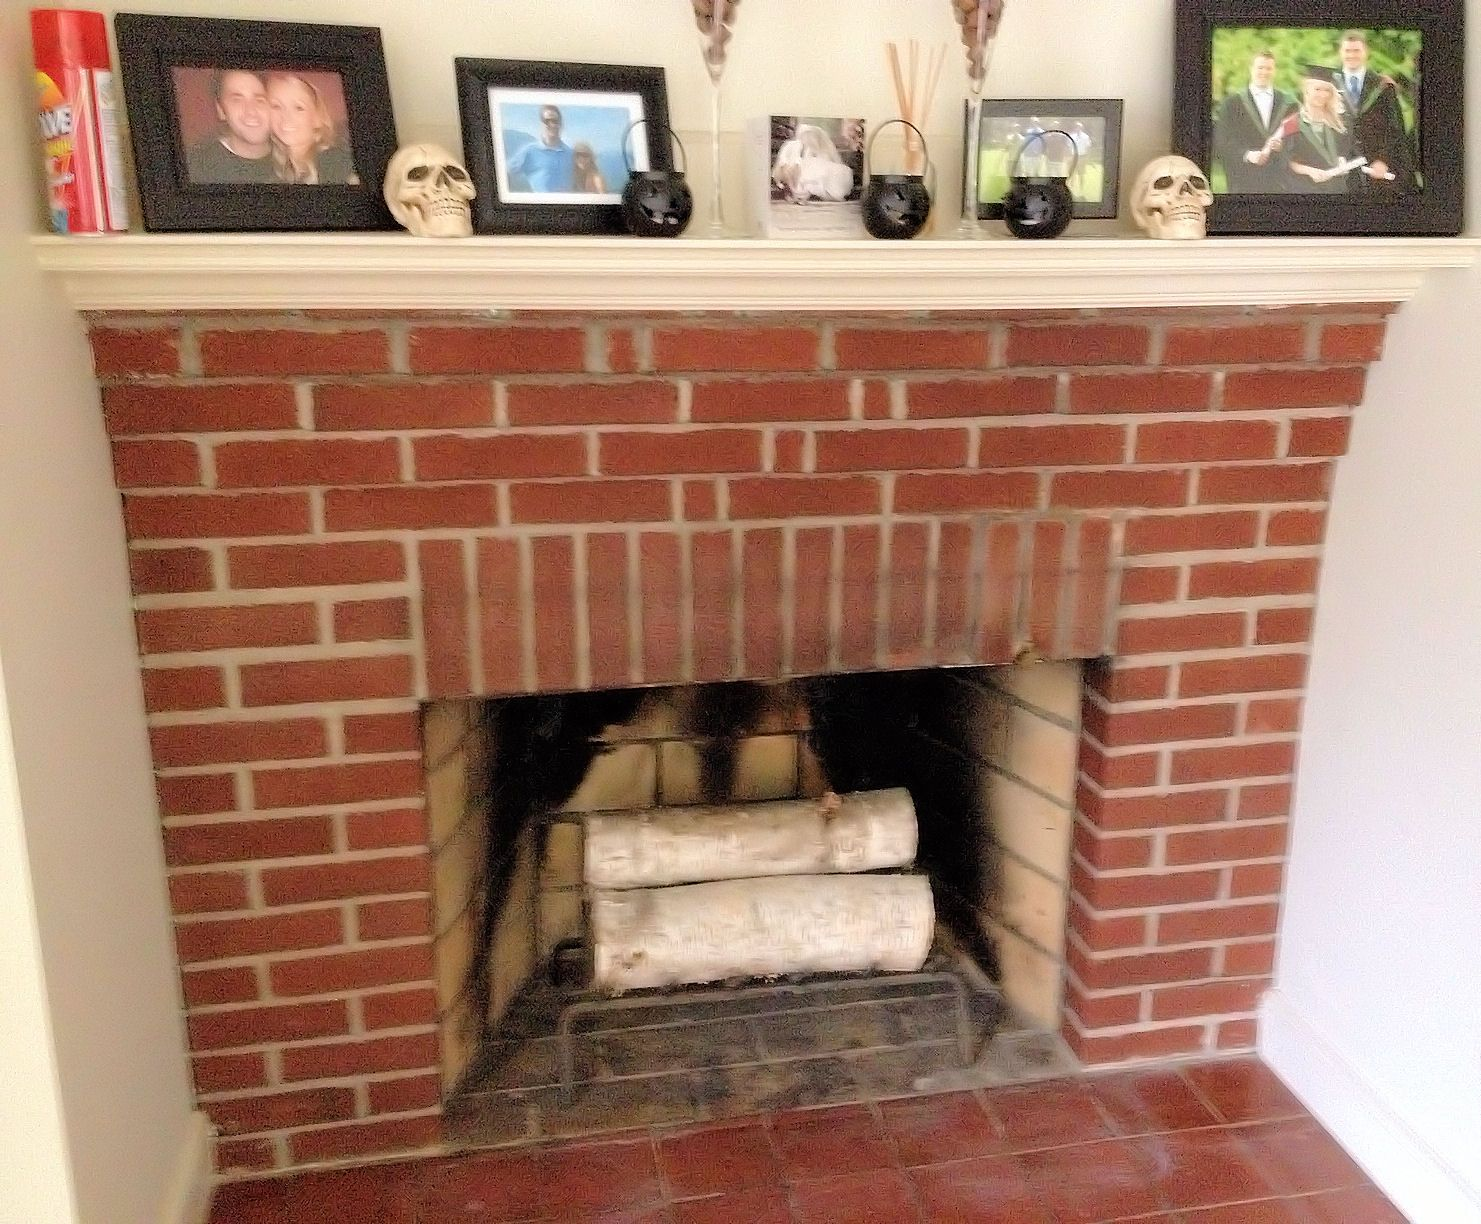 Red brick fireplace tile hearth tiles decor Color ideas for living room with brick fireplace